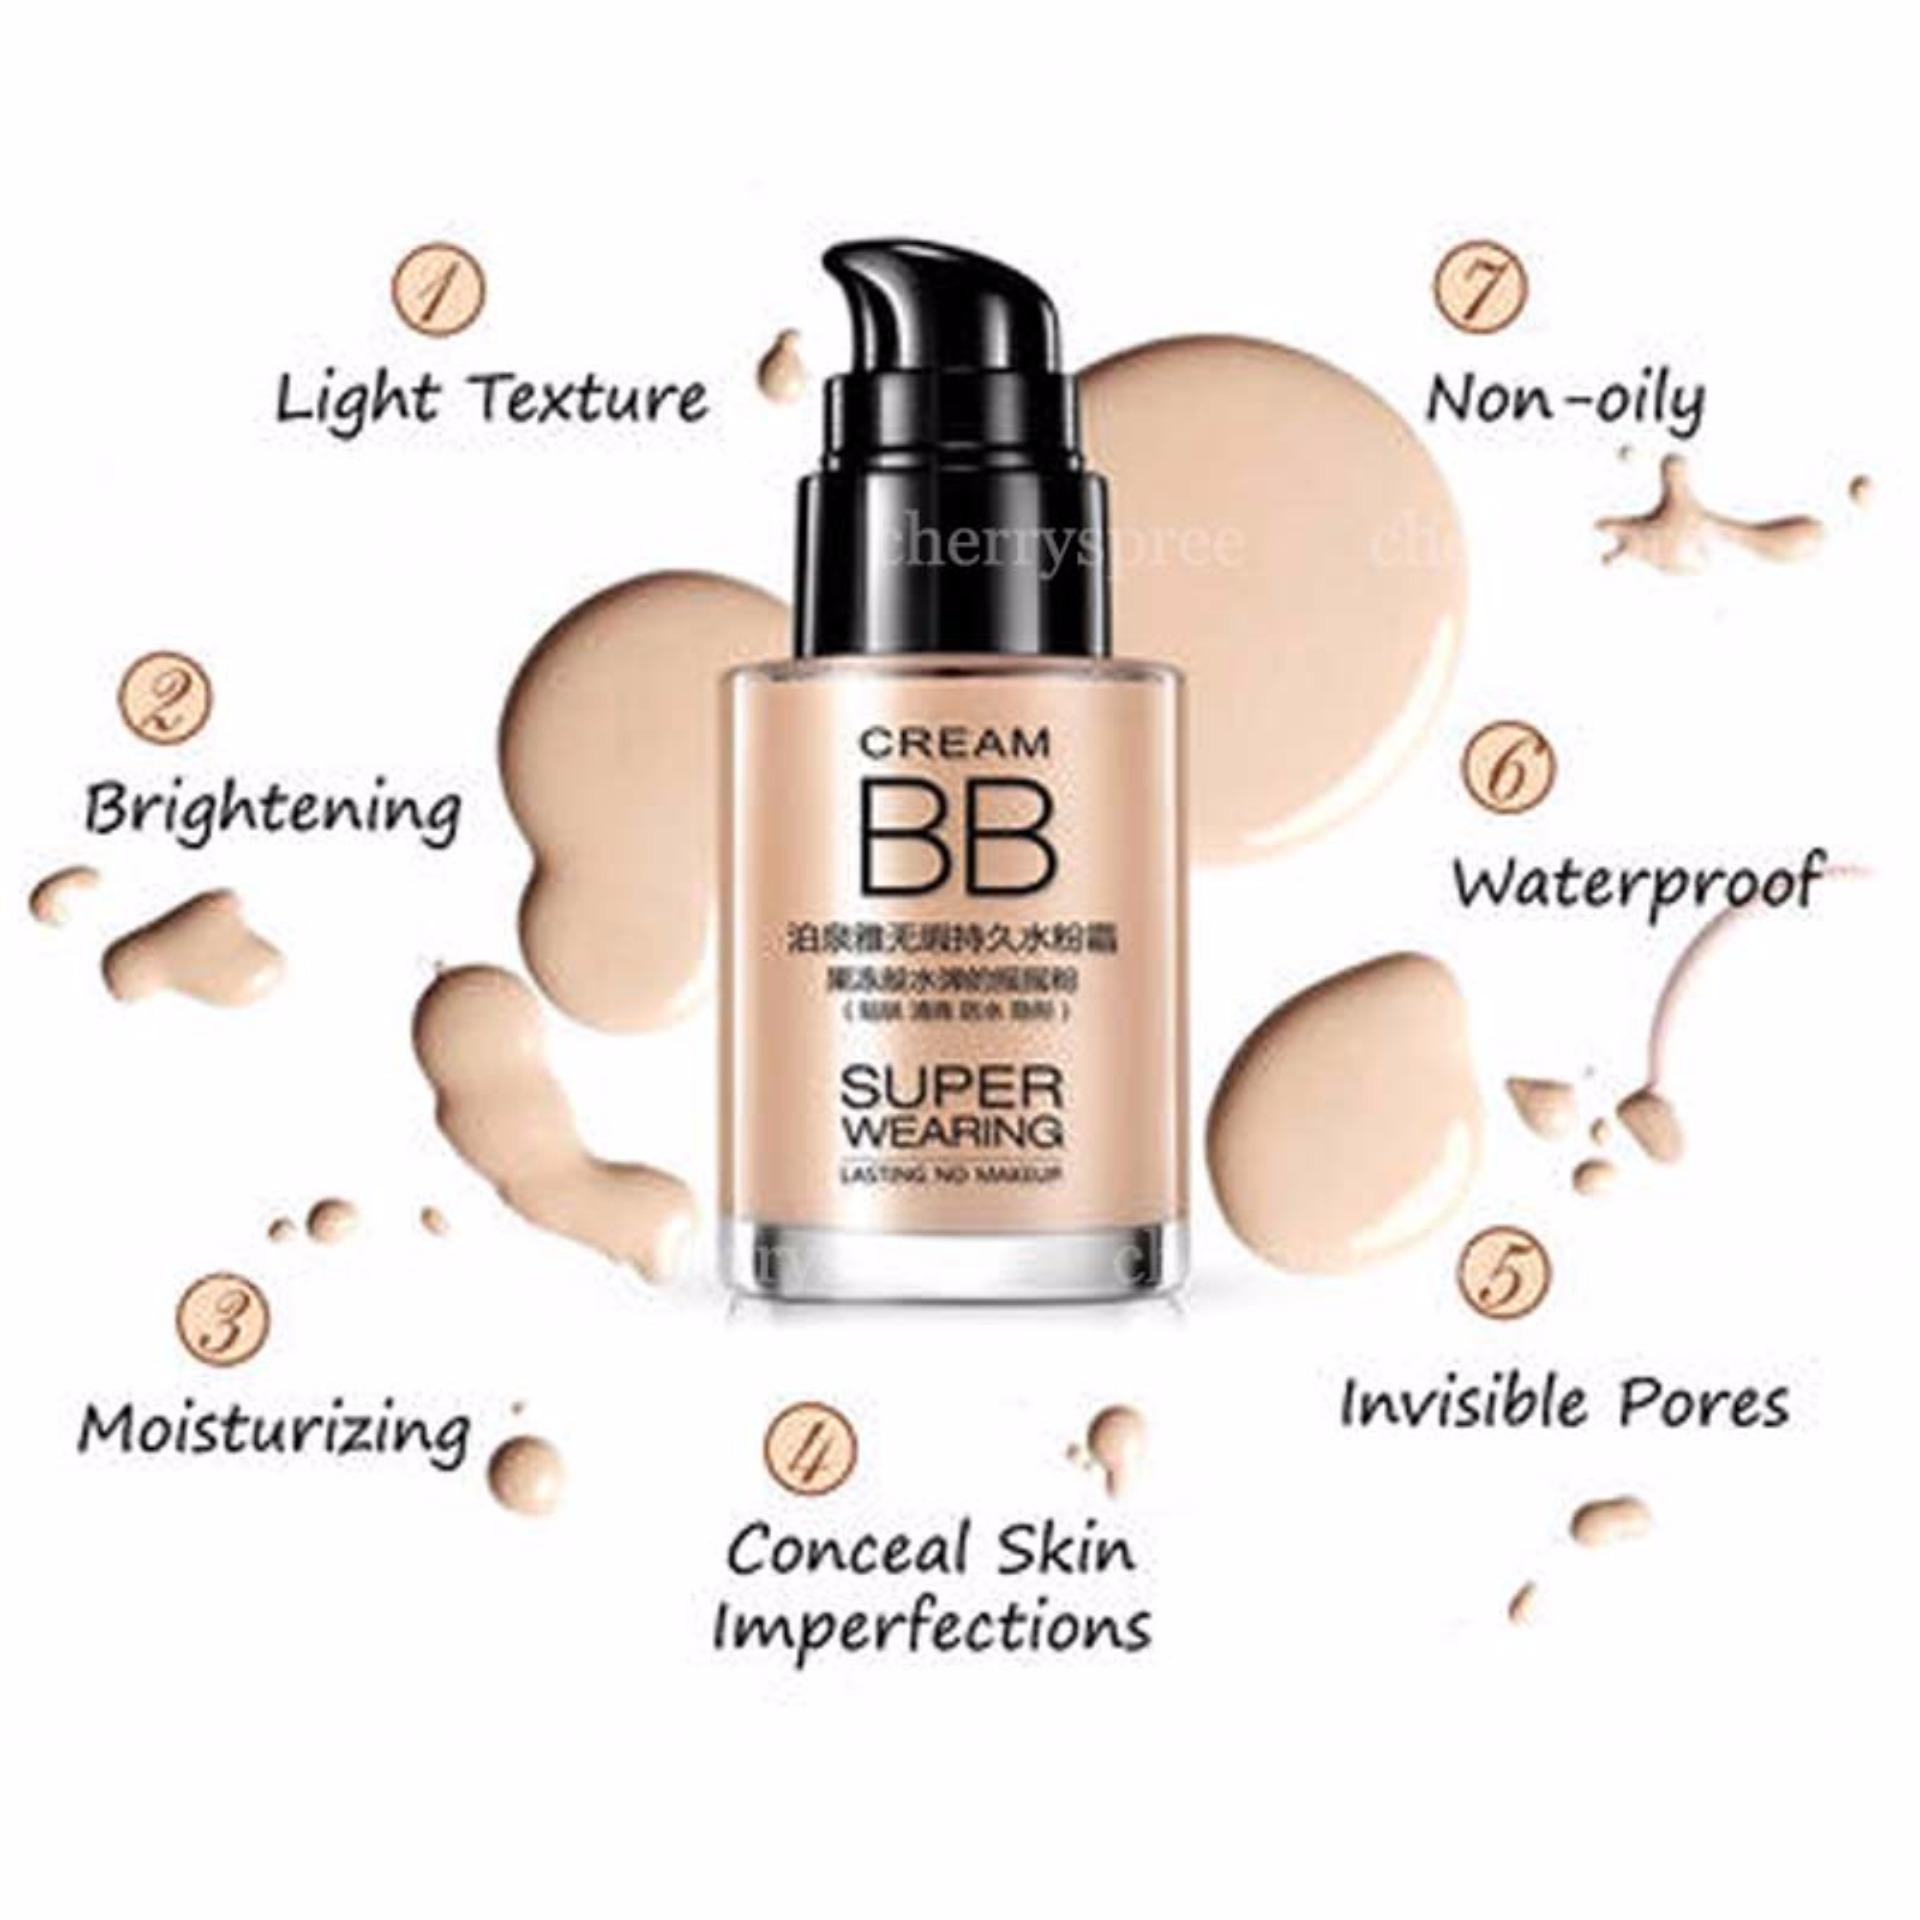 Bioaqua Super Wearing Lasting Bb Cream 30ml Putih Daftar Harga No 3 Dus Air Cushion Concealer Foundation Make Up Kulit Muka Waterproof Long